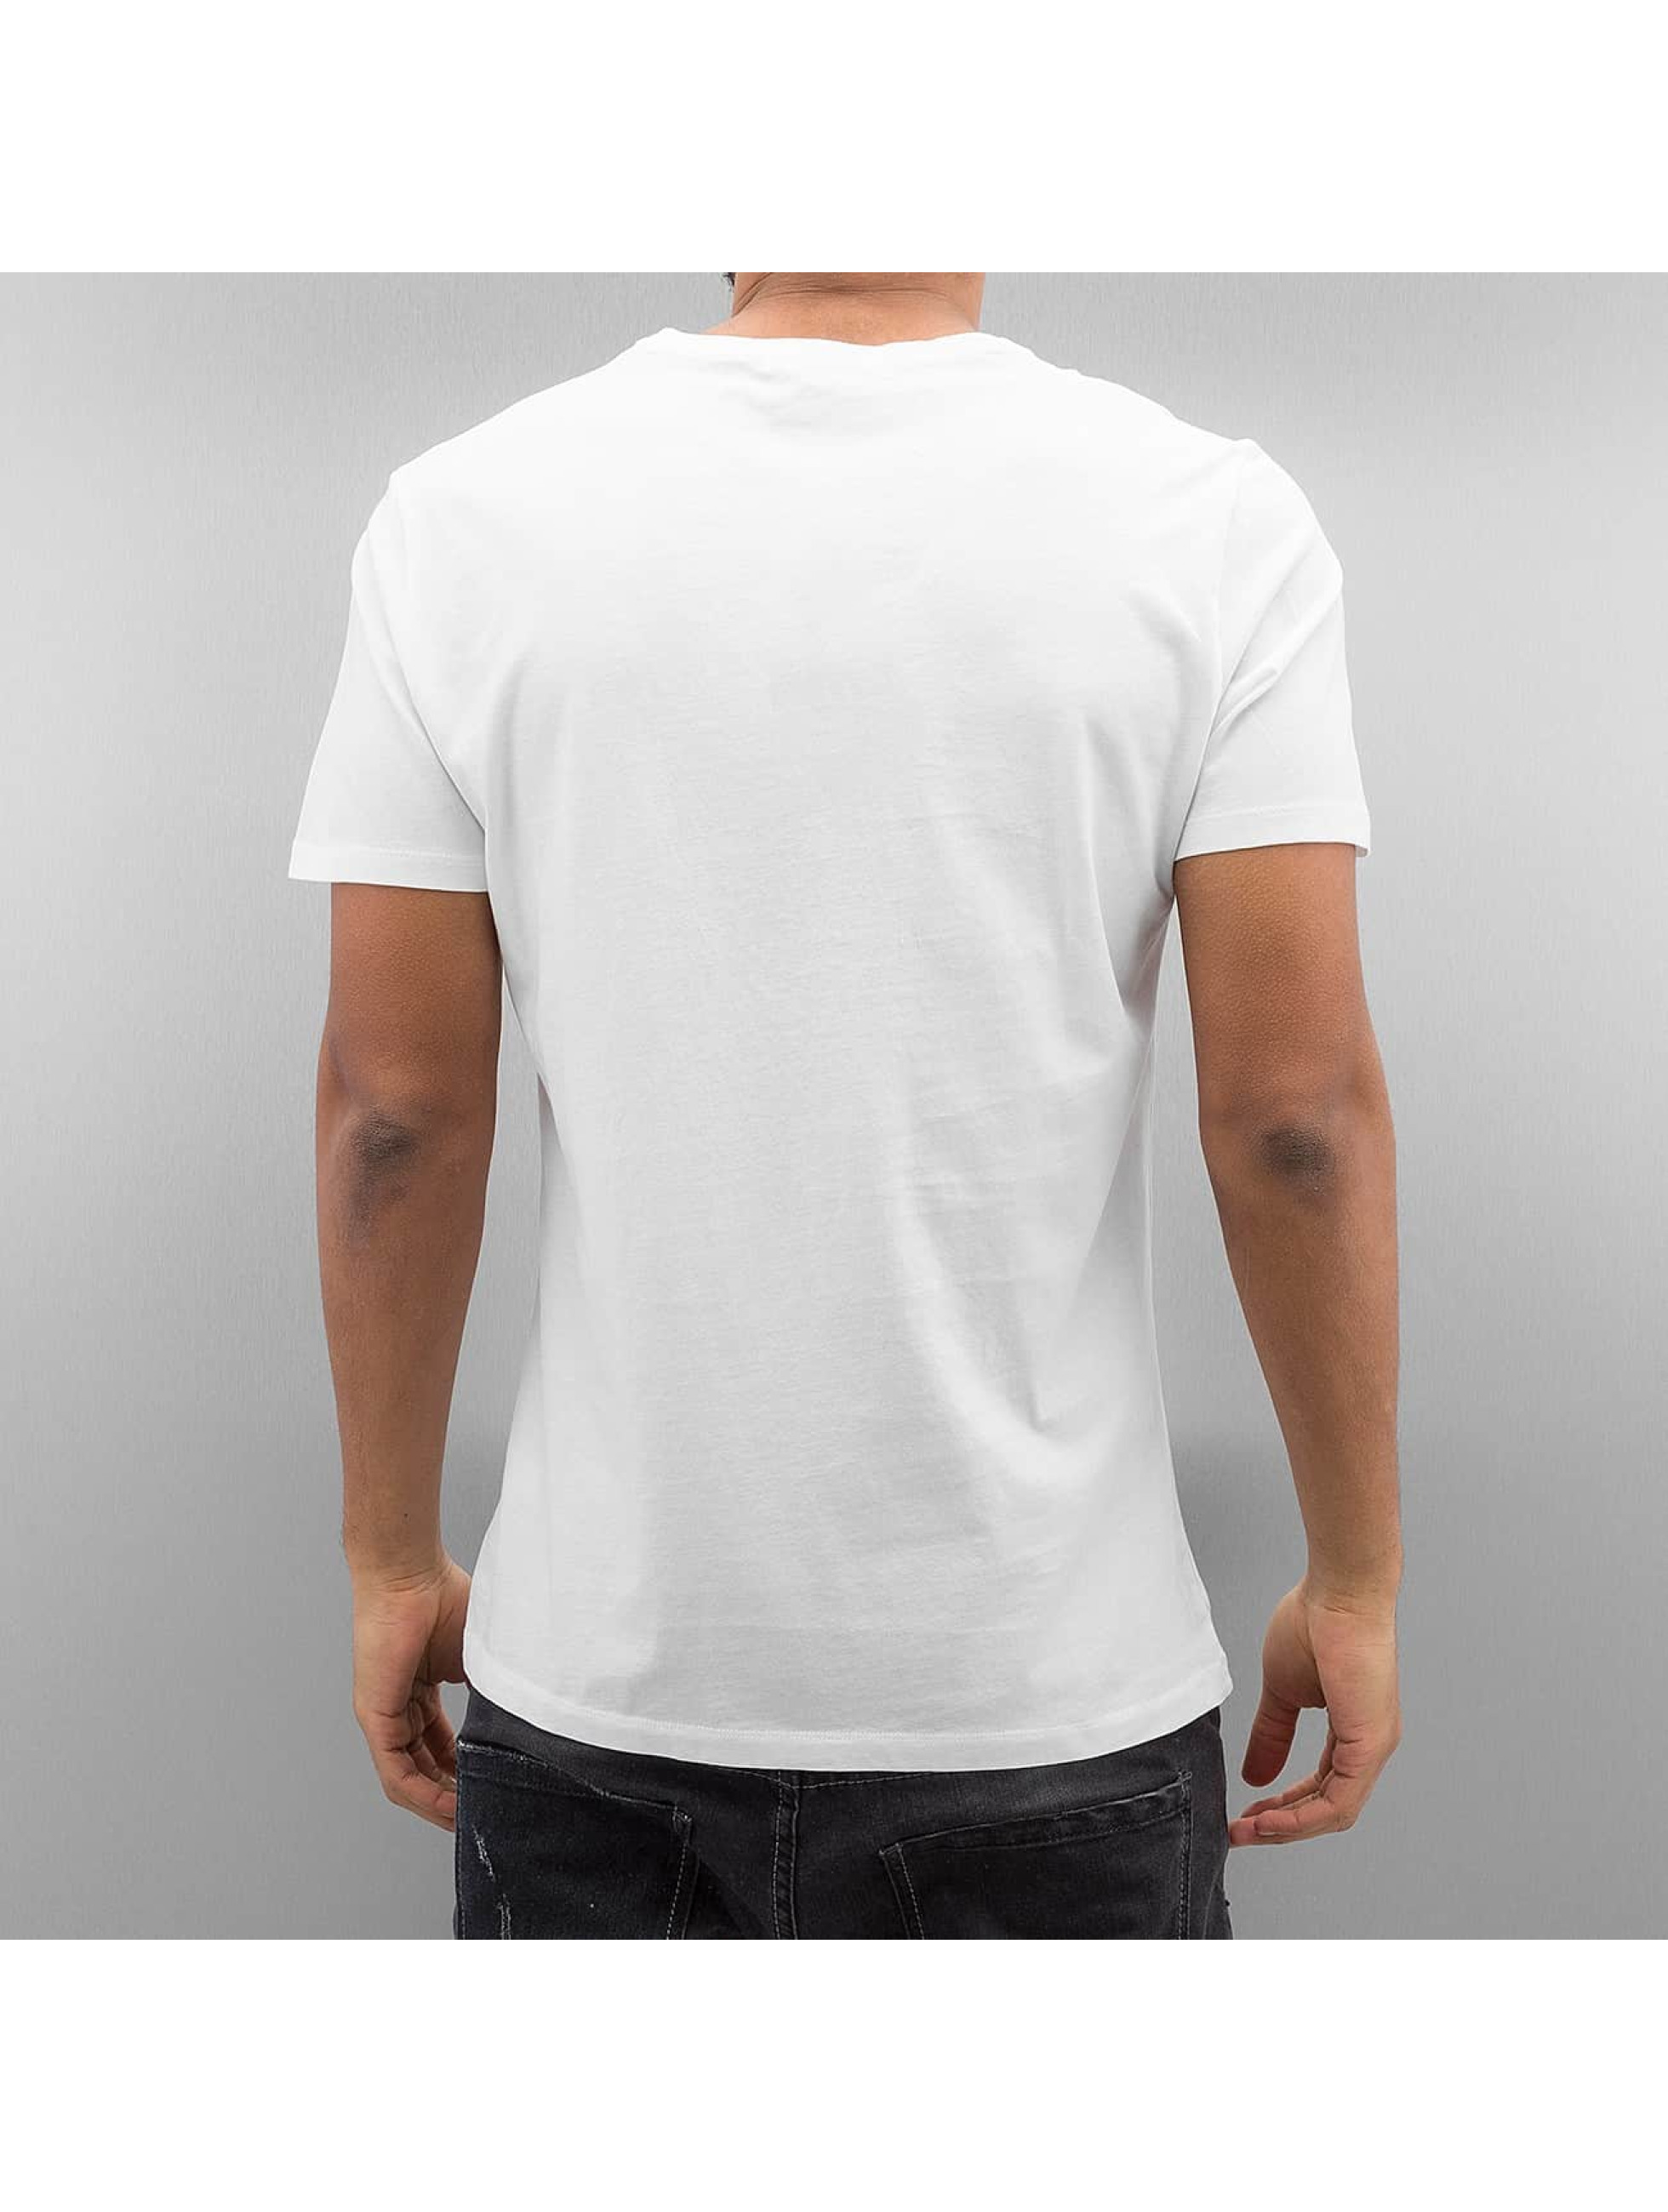 French Kick T-Shirt Ma Gueule white